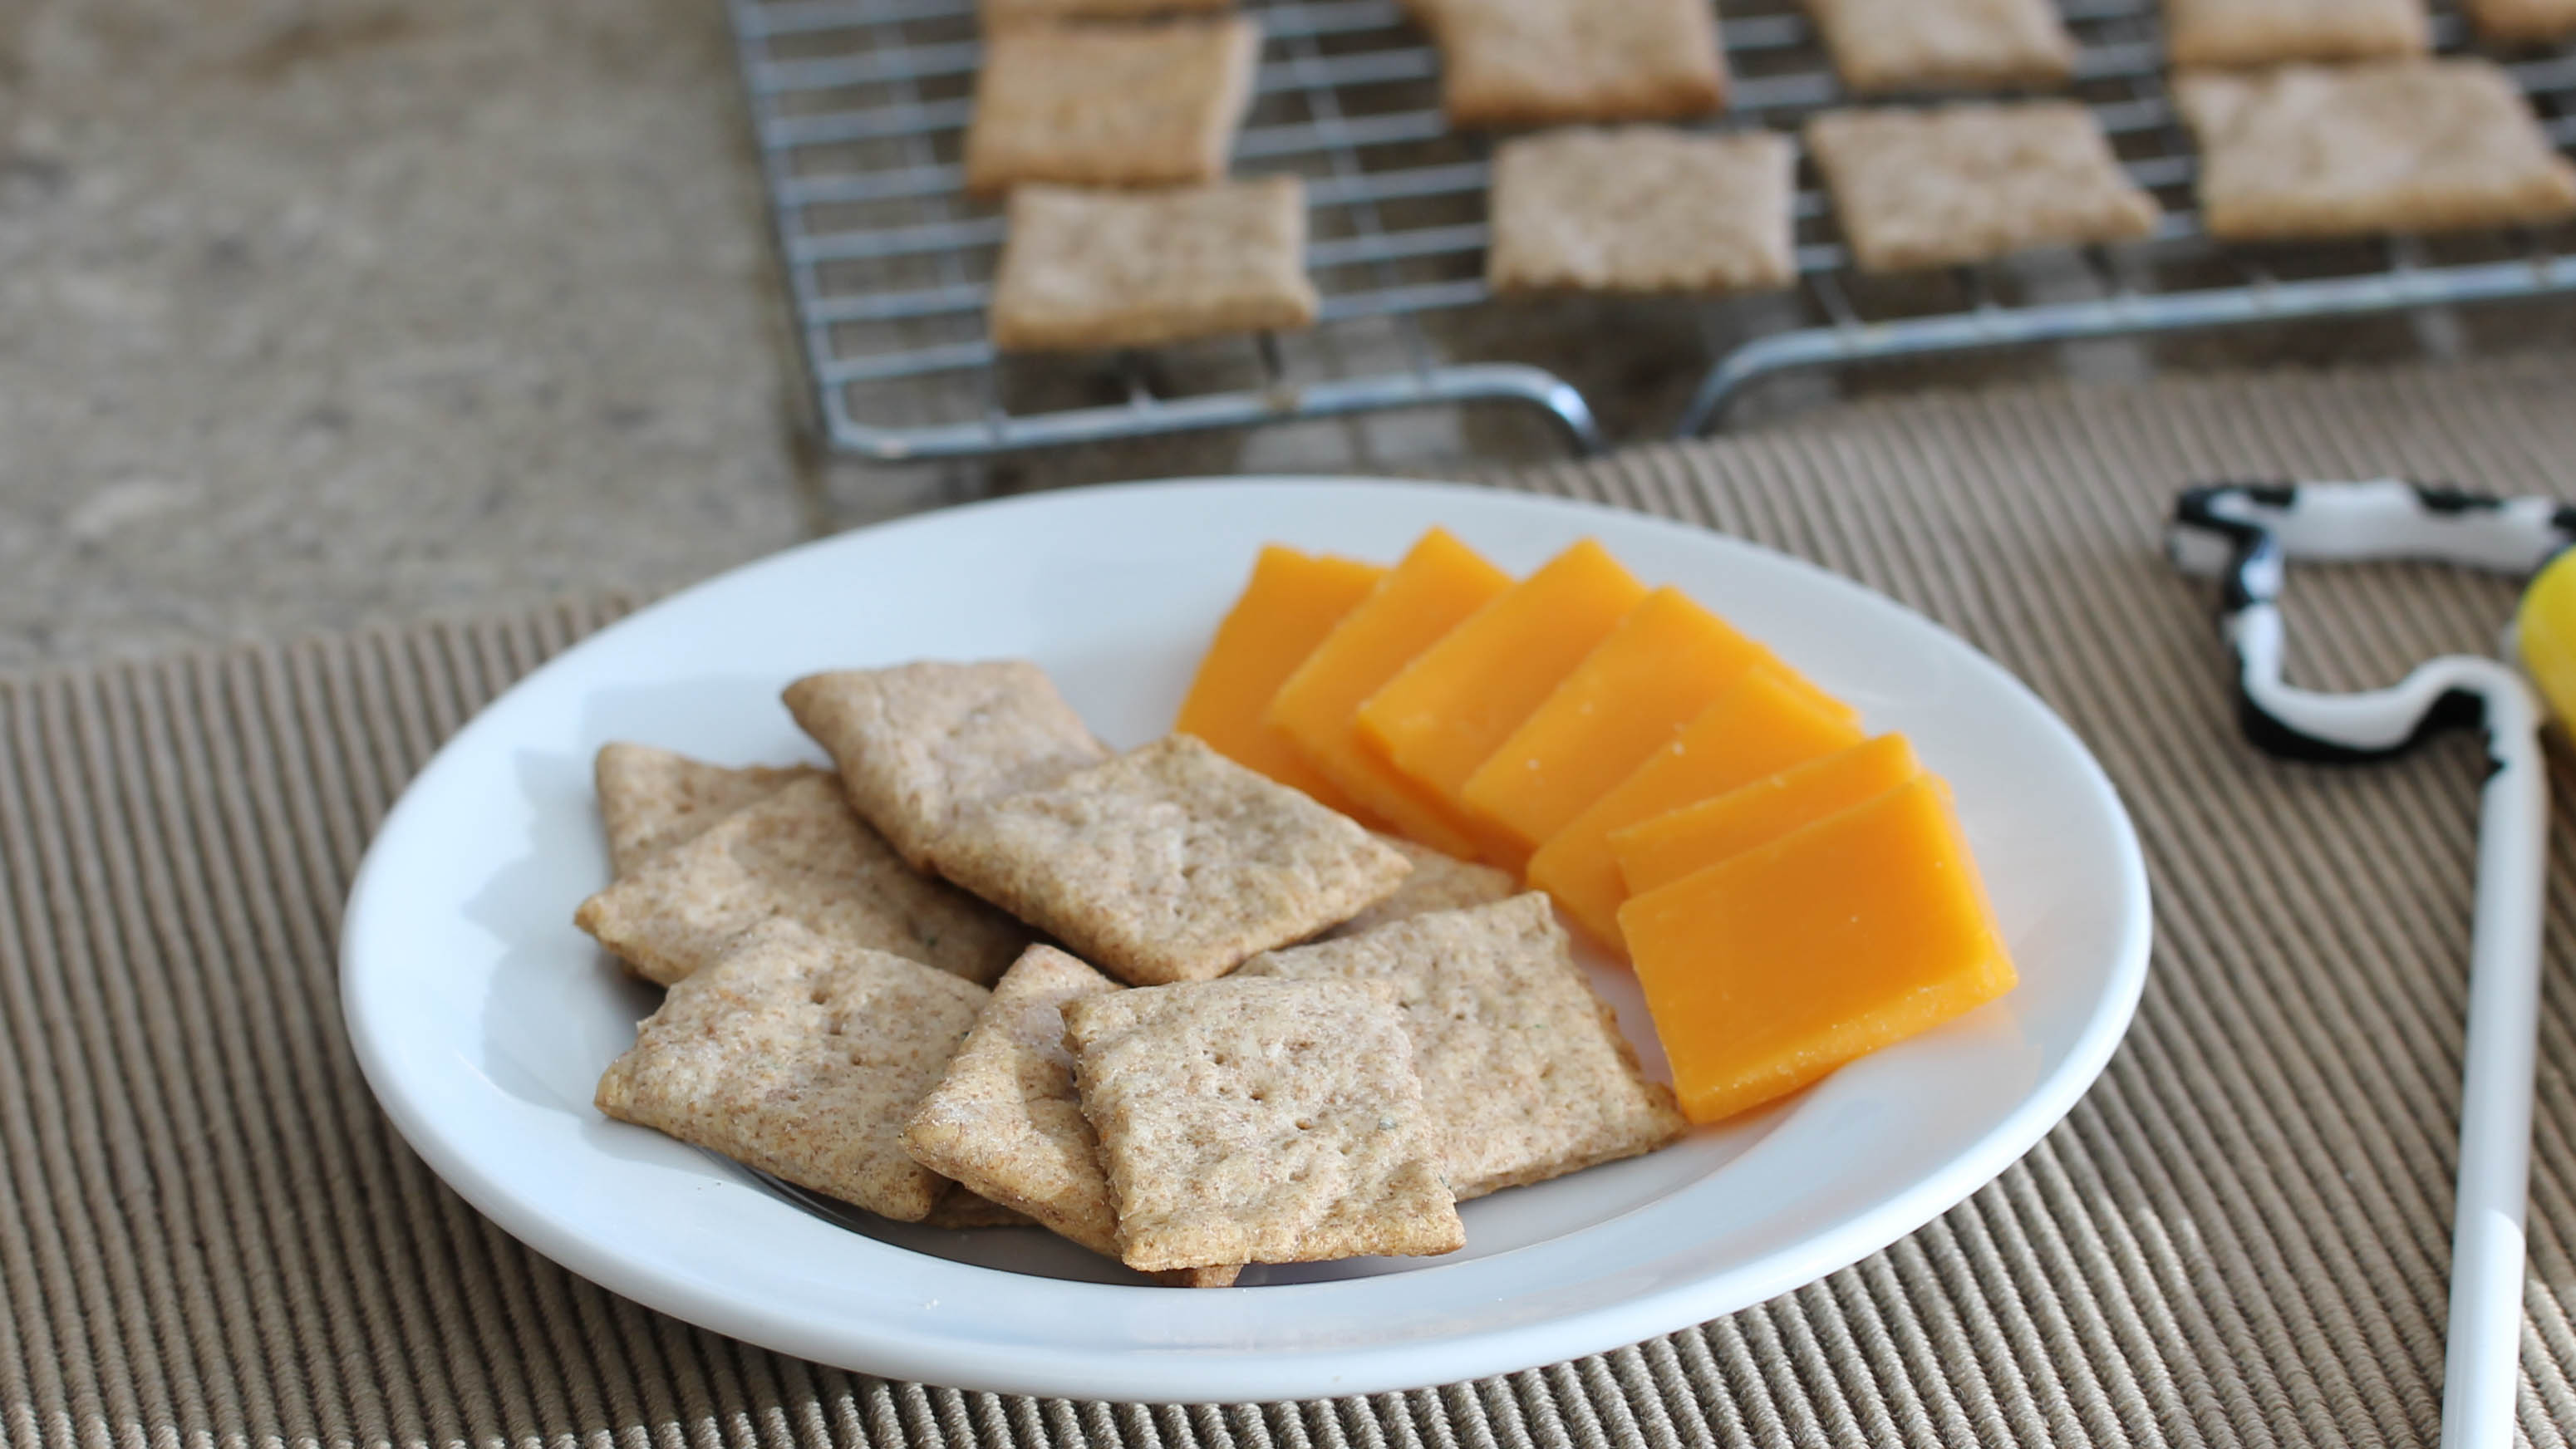 Protein Crackers made with BiPro whey protein powder